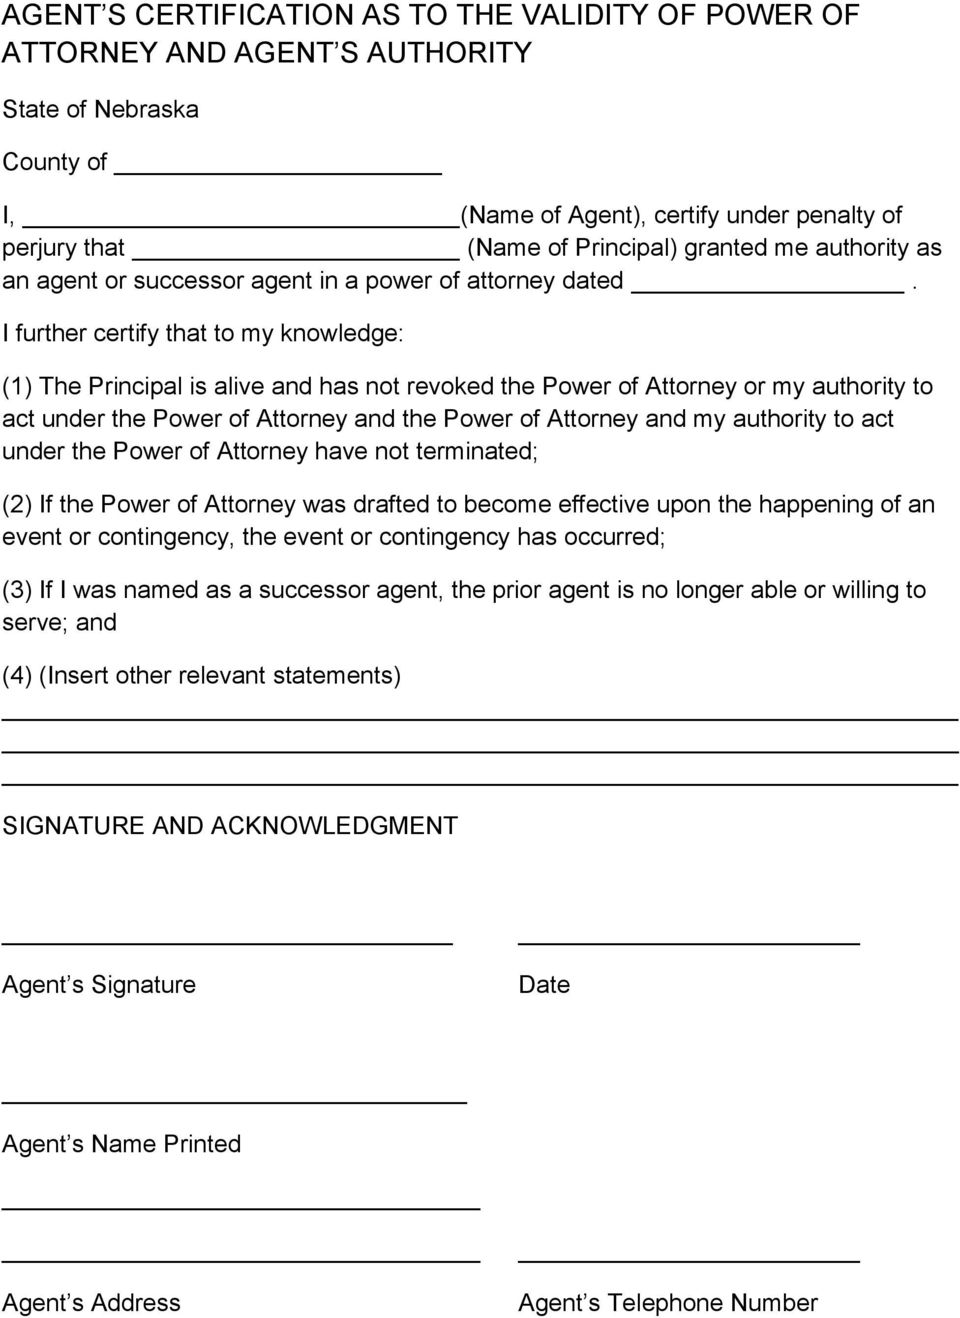 I further certify that to my knowledge: (1) The Principal is alive and has not revoked the Power of Attorney or my authority to act under the Power of Attorney and the Power of Attorney and my